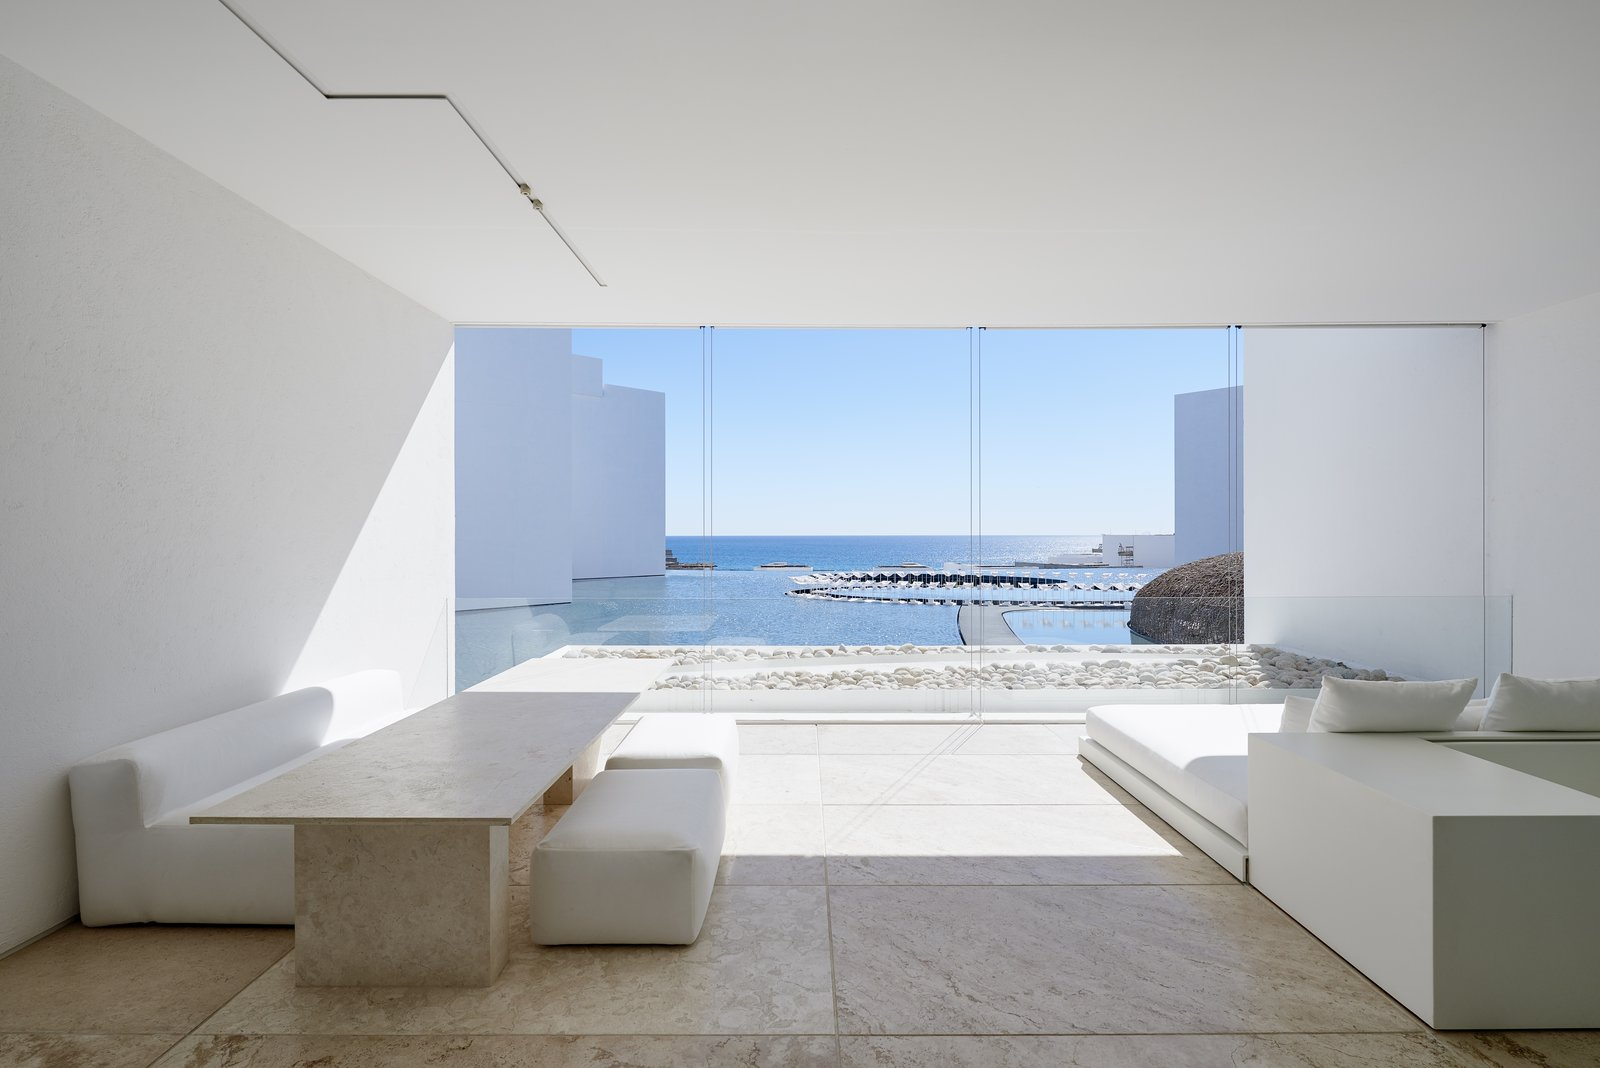 Living Room, Ceiling Lighting, Sofa, Travertine Floor, Bench, and Table Each room encases a private view of the ocean.  Photo 9 of 12 in An Exquisite Beach Resort on Baja California Sur Lies Where the Water Meets the Horizon